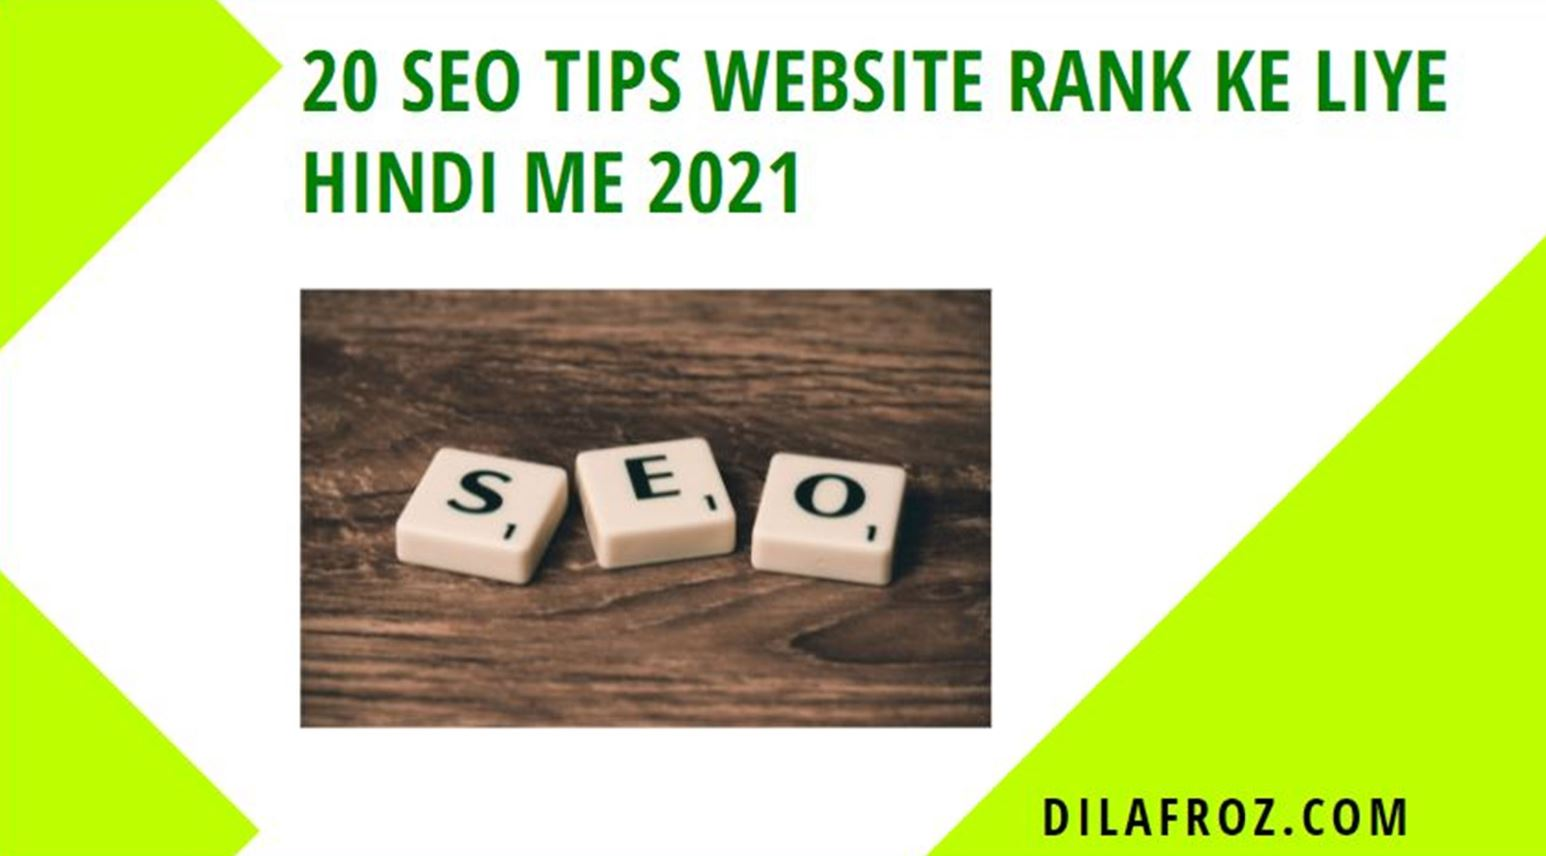 20 SEO Tips For Website Rank In Hindi 2021